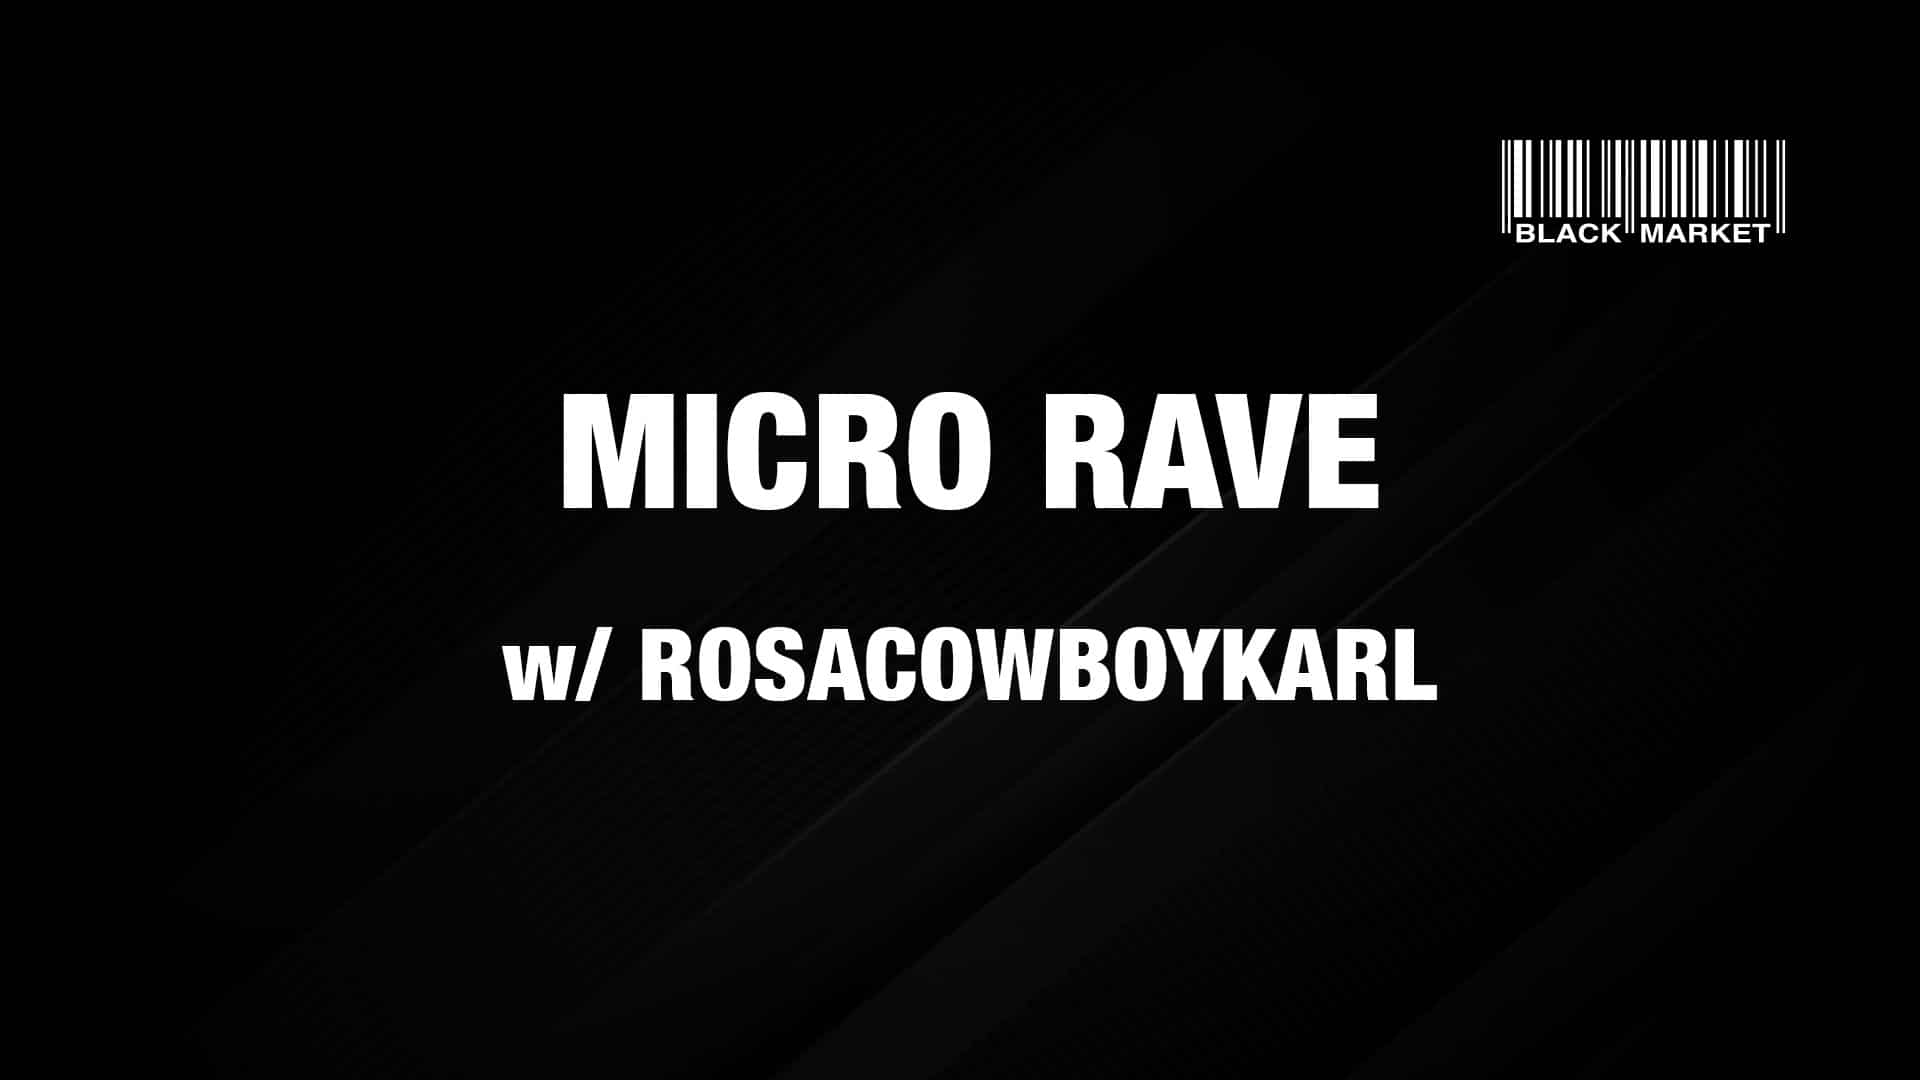 Events Wien: MICRO RAVE AFTERHOUR #11 w/ ROSACOWBOYKARL